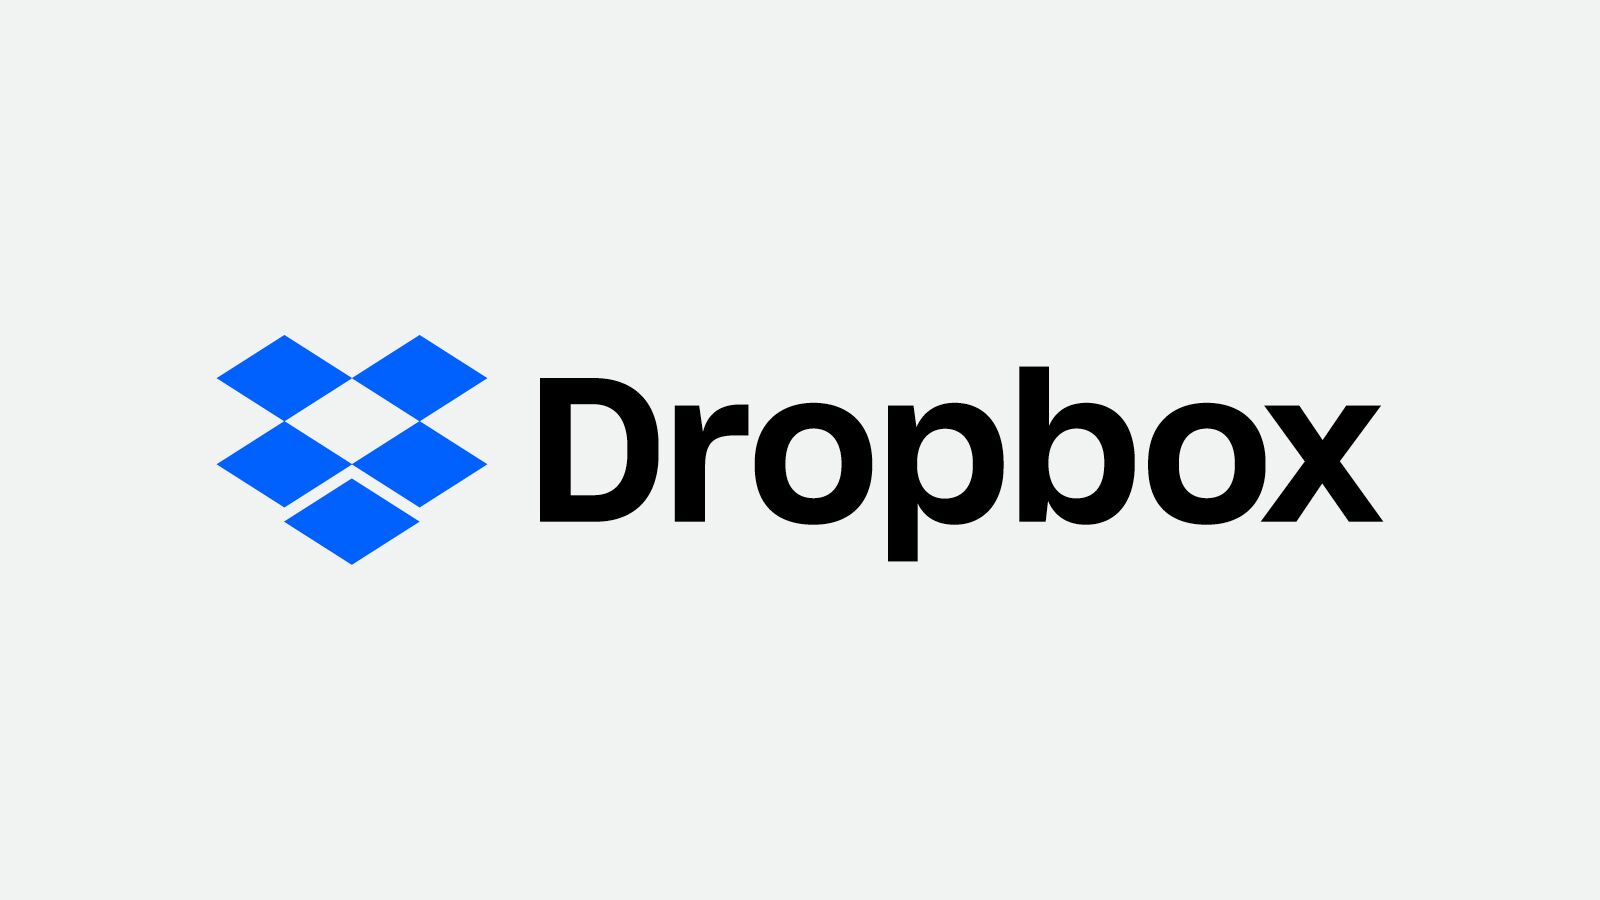 How to contact Dropbox Customer Support?